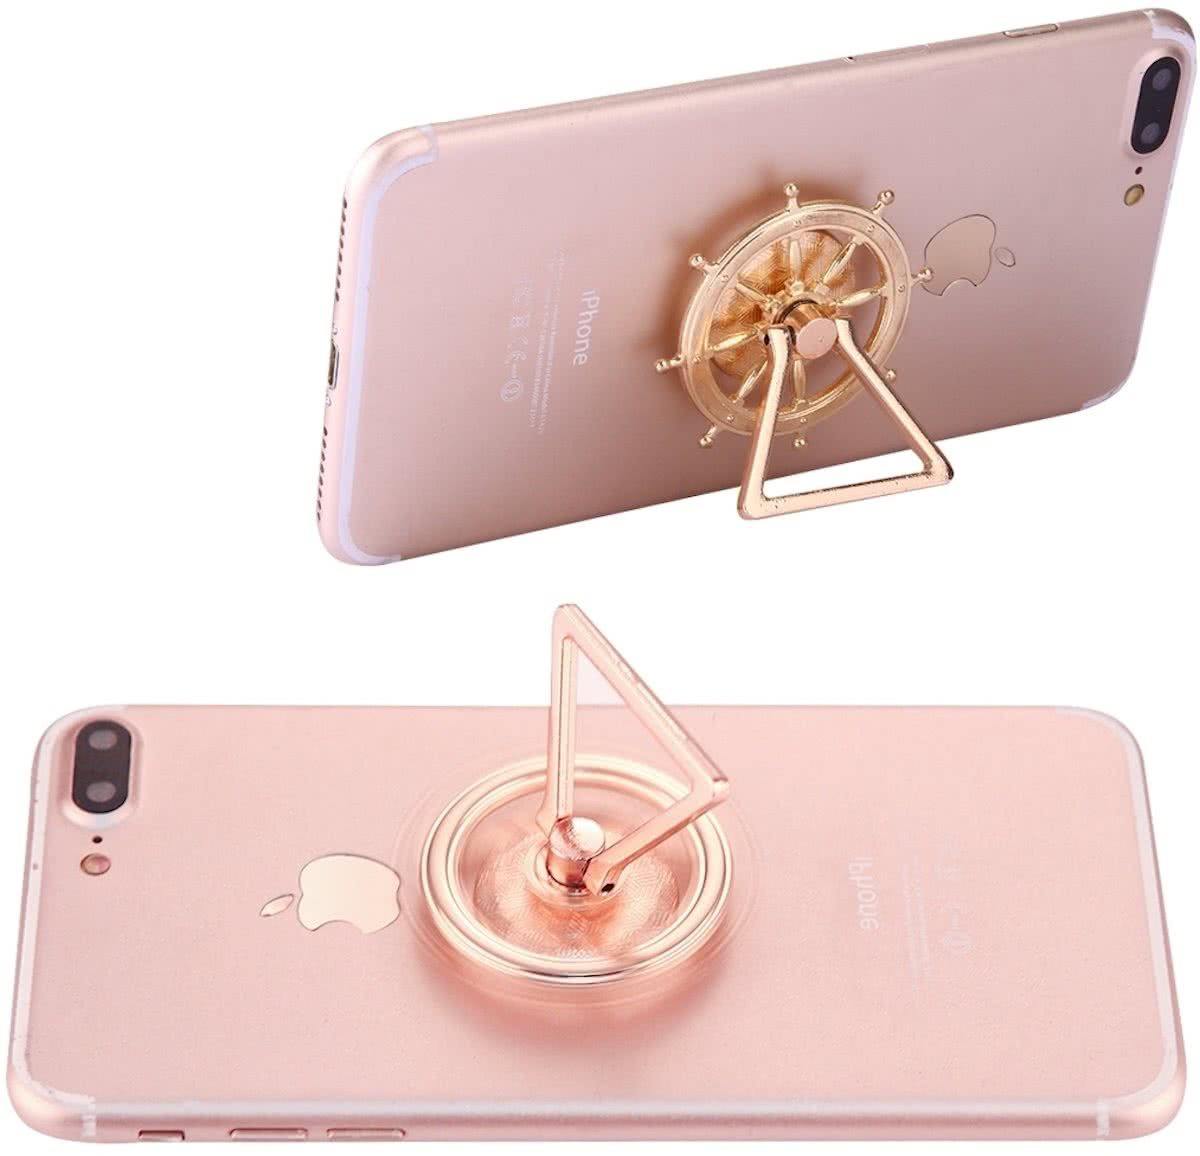 Rudder Wheel Shape Phone Triangle houder   Spinner Toy Stress rooducer Anti-Anxiety Toy, About 0.2 Minutes Rotation Time(Gold)